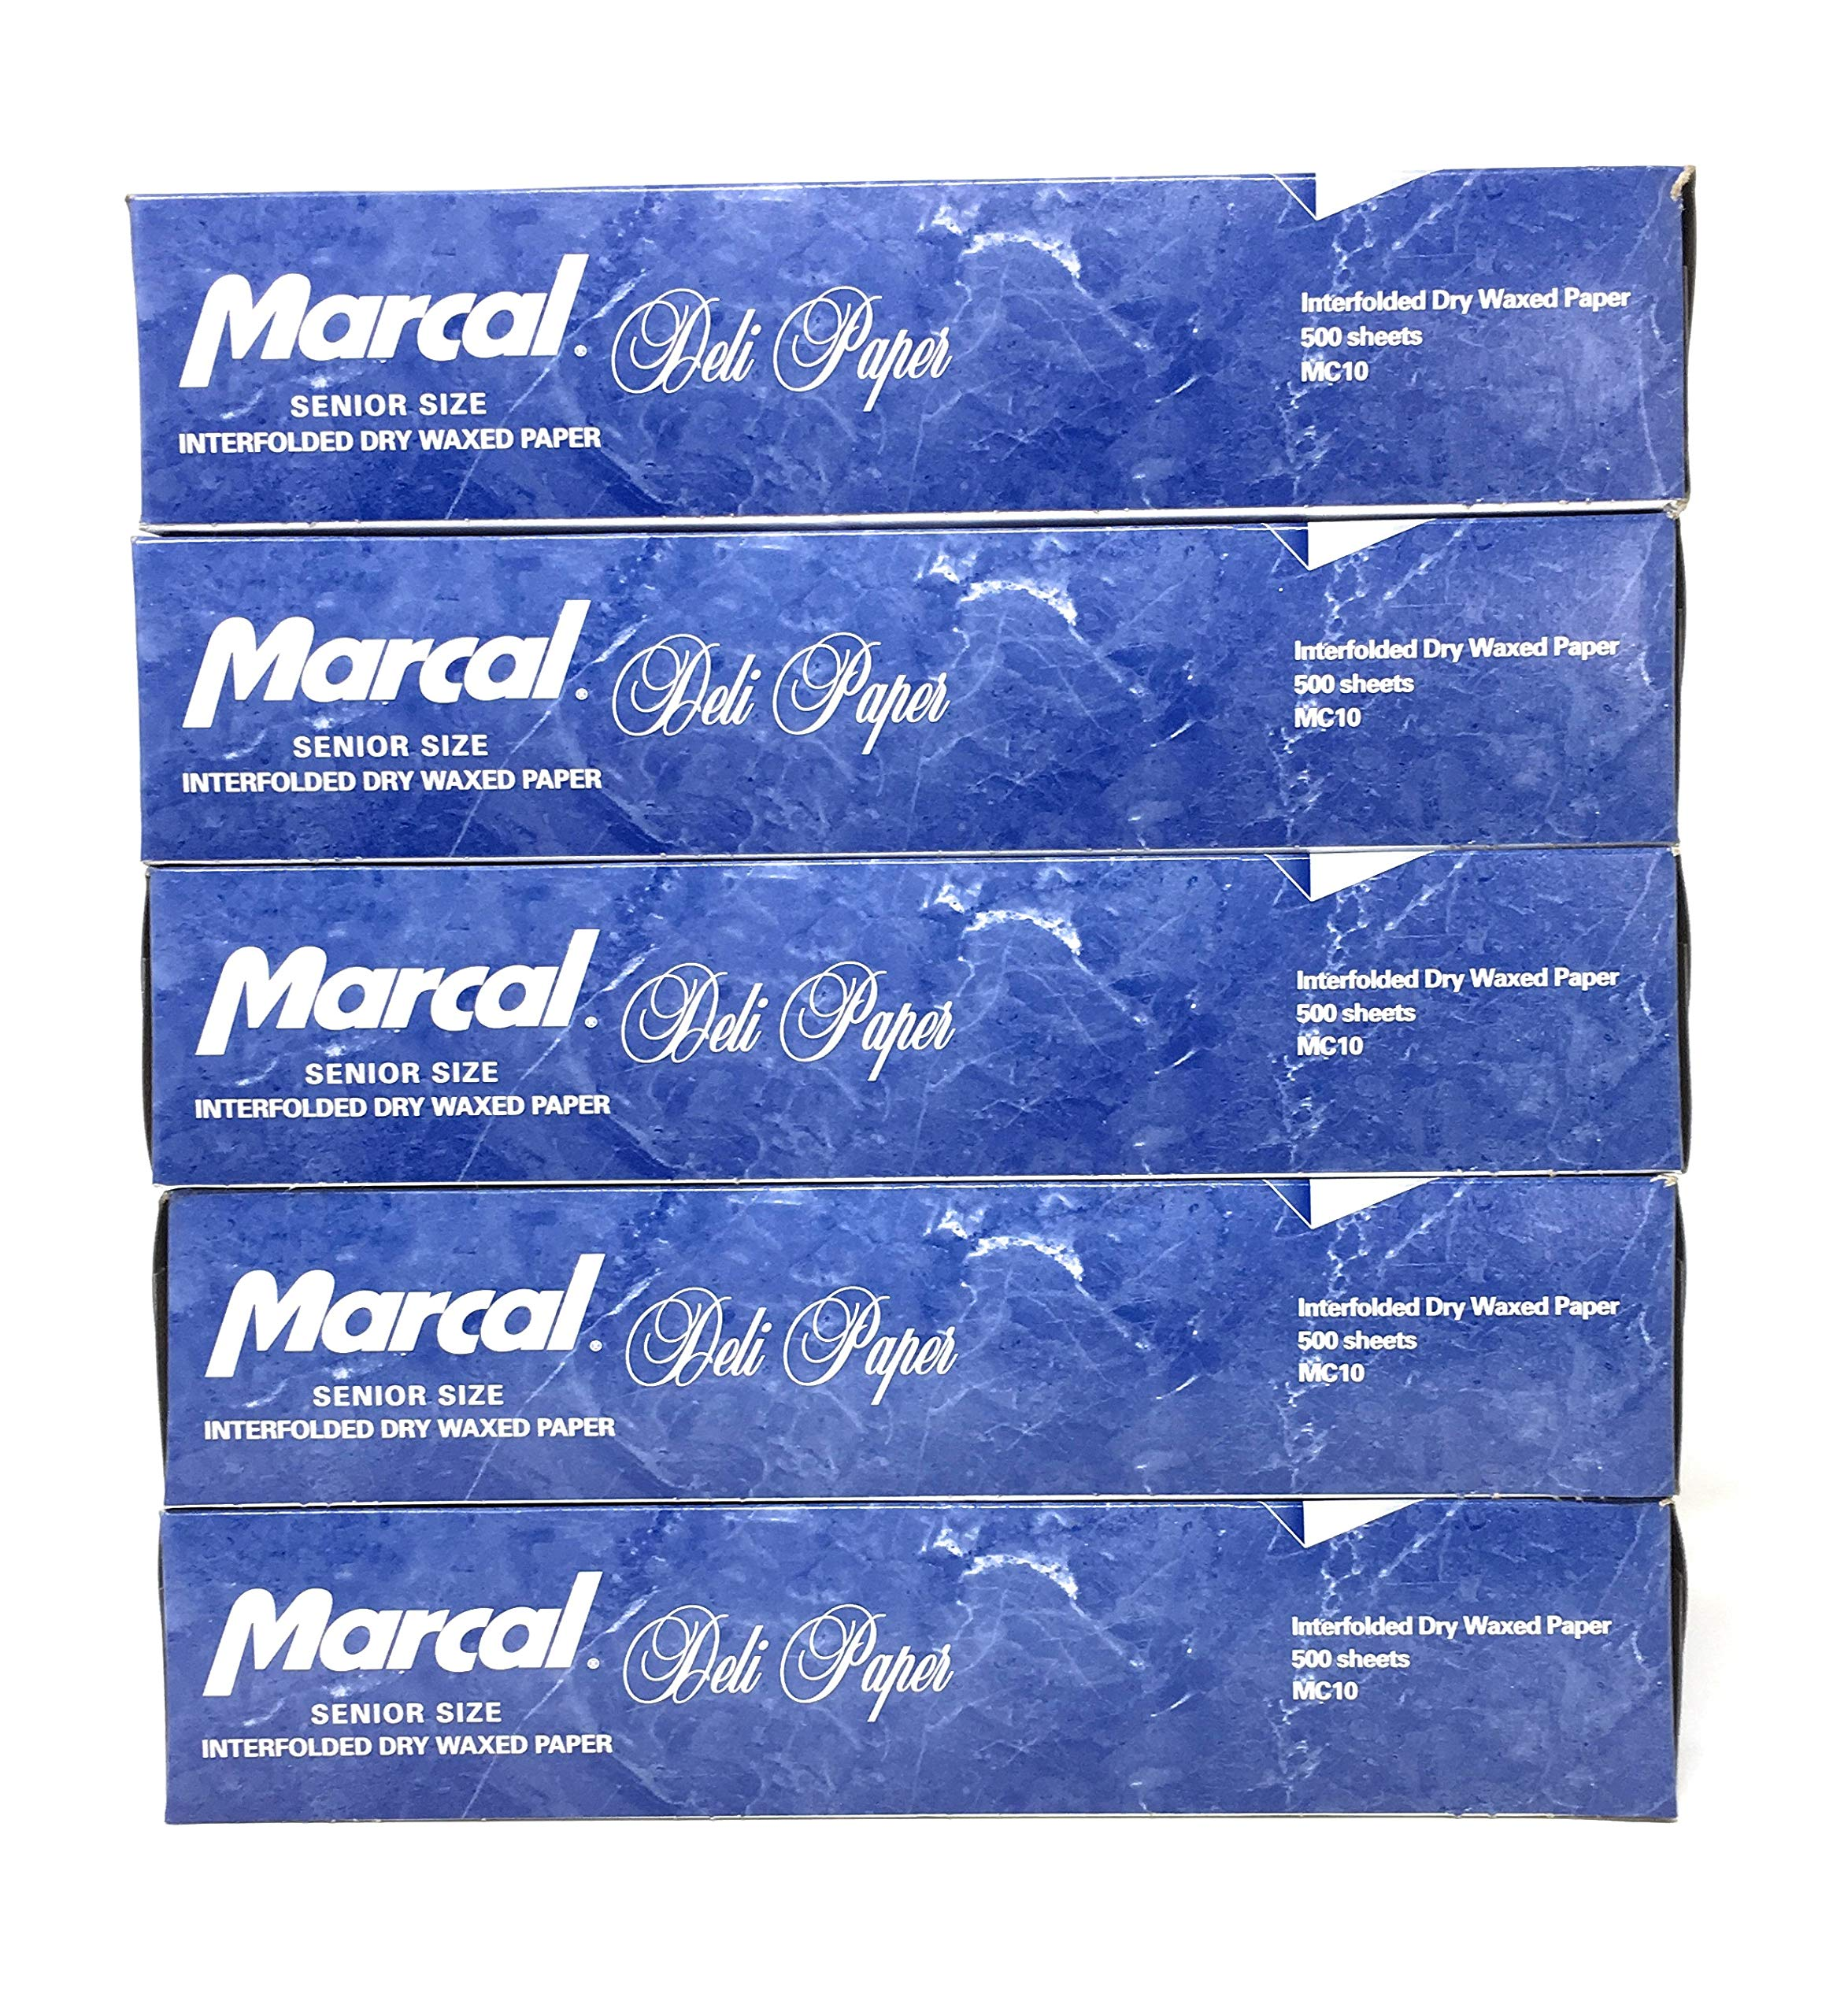 Marcal Deli Wrap Interfolded Wax Paper. Dry Waxed Food Liner Senior Size 10 Inch by 10.75 Inch. Total of 2500 Sheets. (5 Packs of 500 Sheets) by Marcal Co. (Image #1)